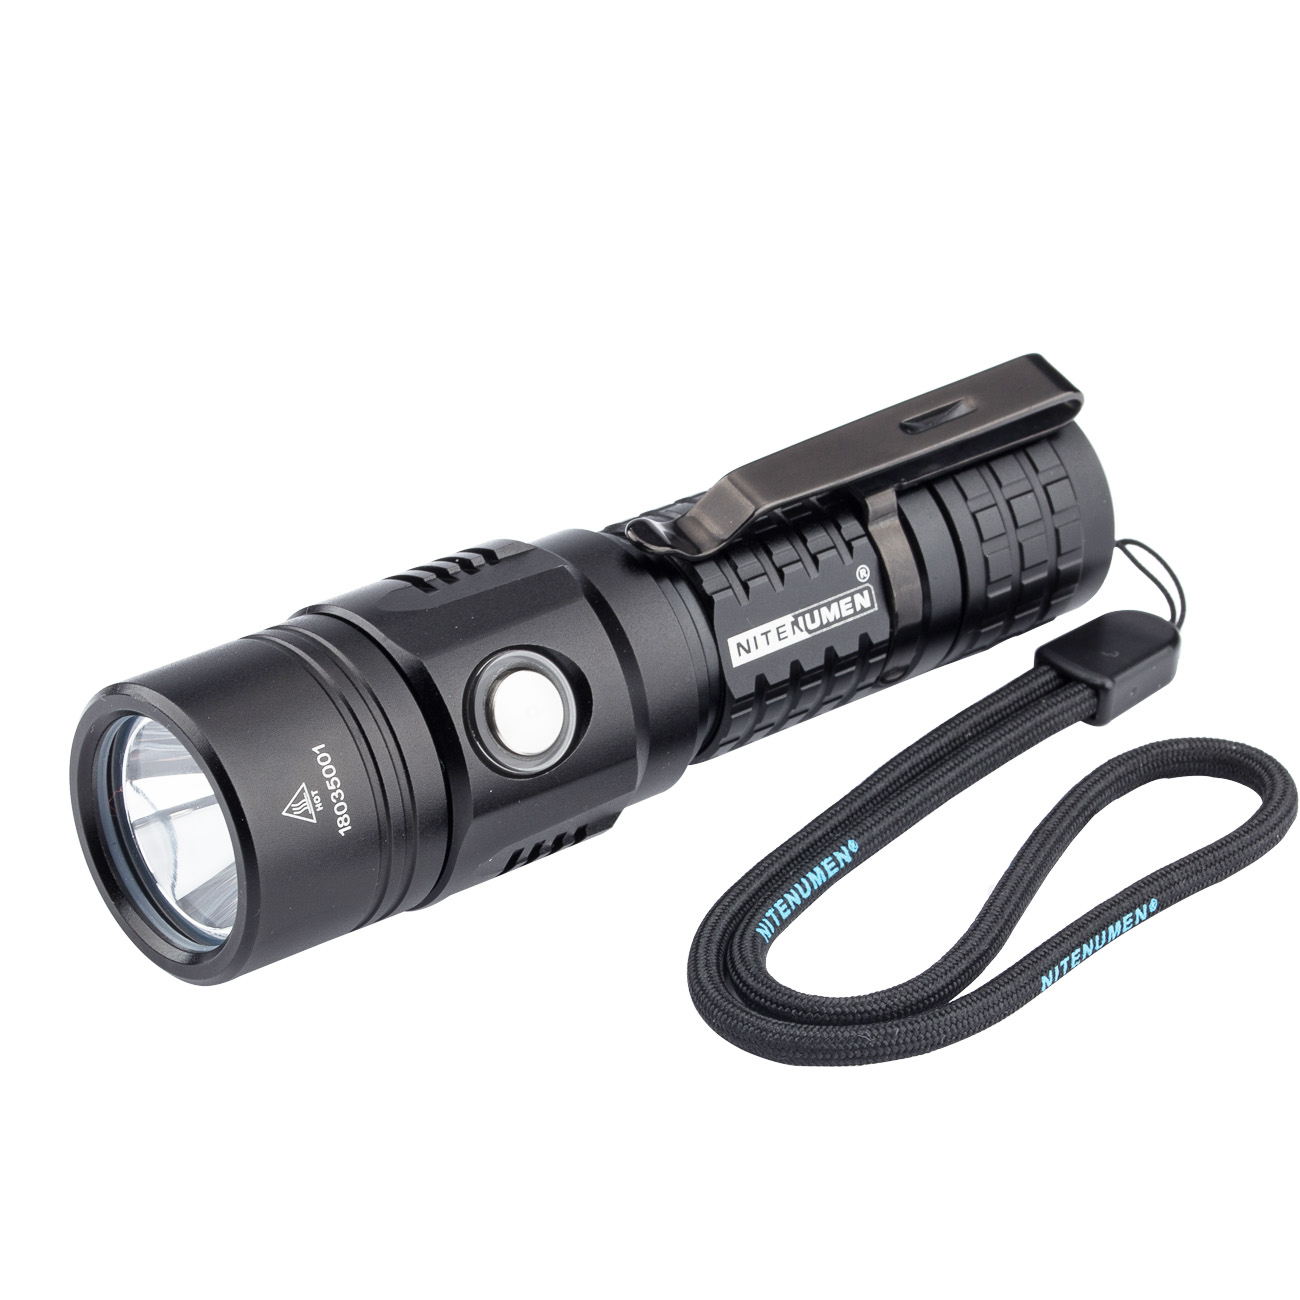 Nitenumen TP15 Waterproof Flashlight